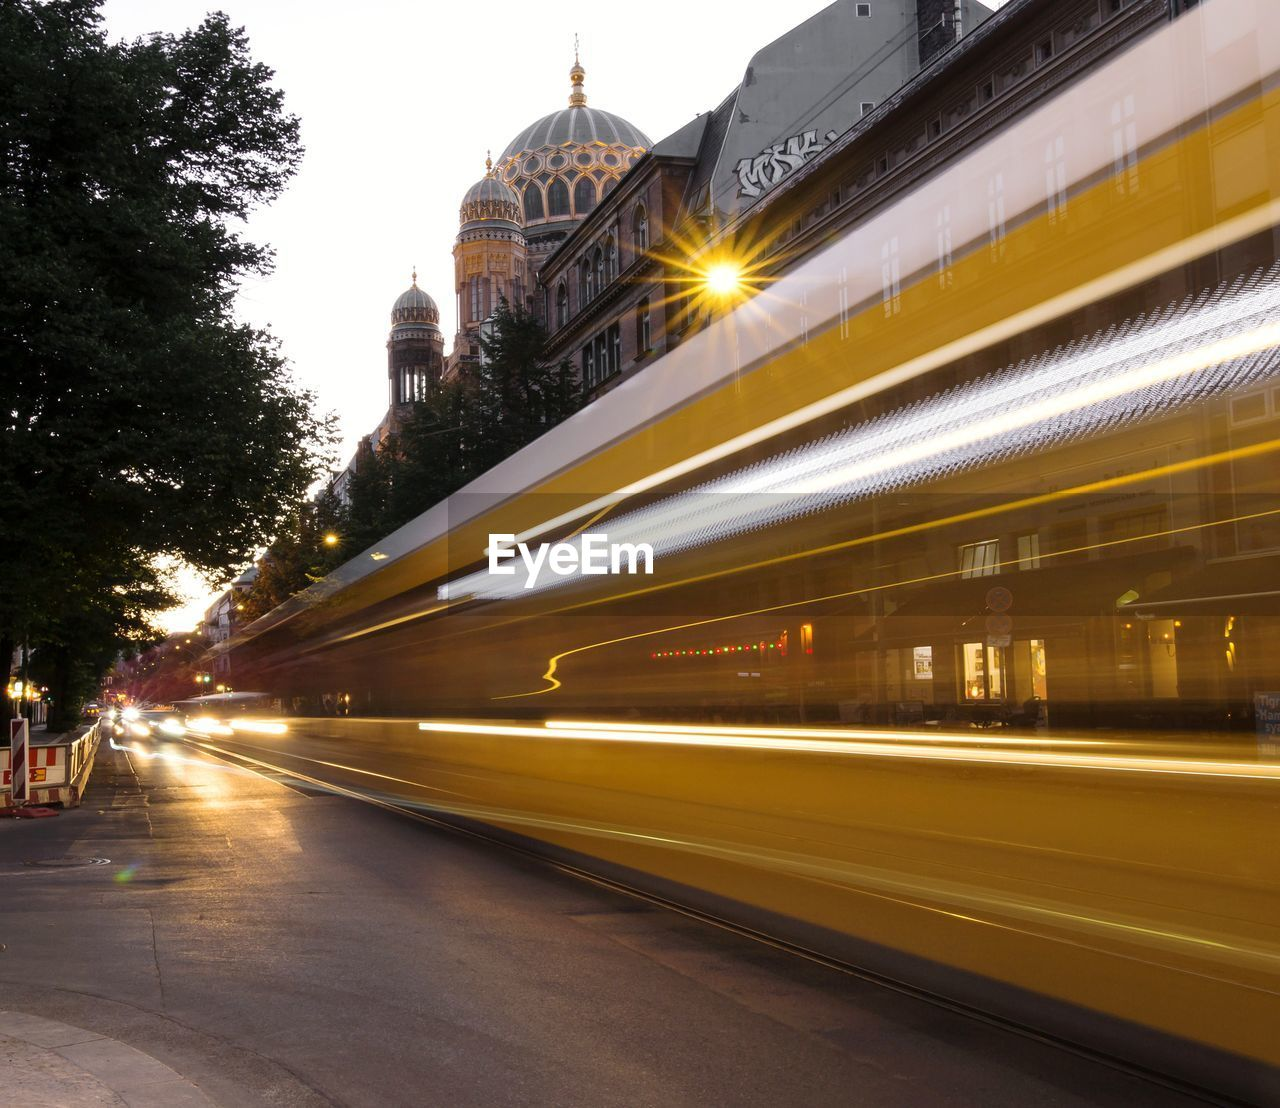 LIGHT TRAILS ON STREET IN CITY AGAINST SKY IN BACKGROUND